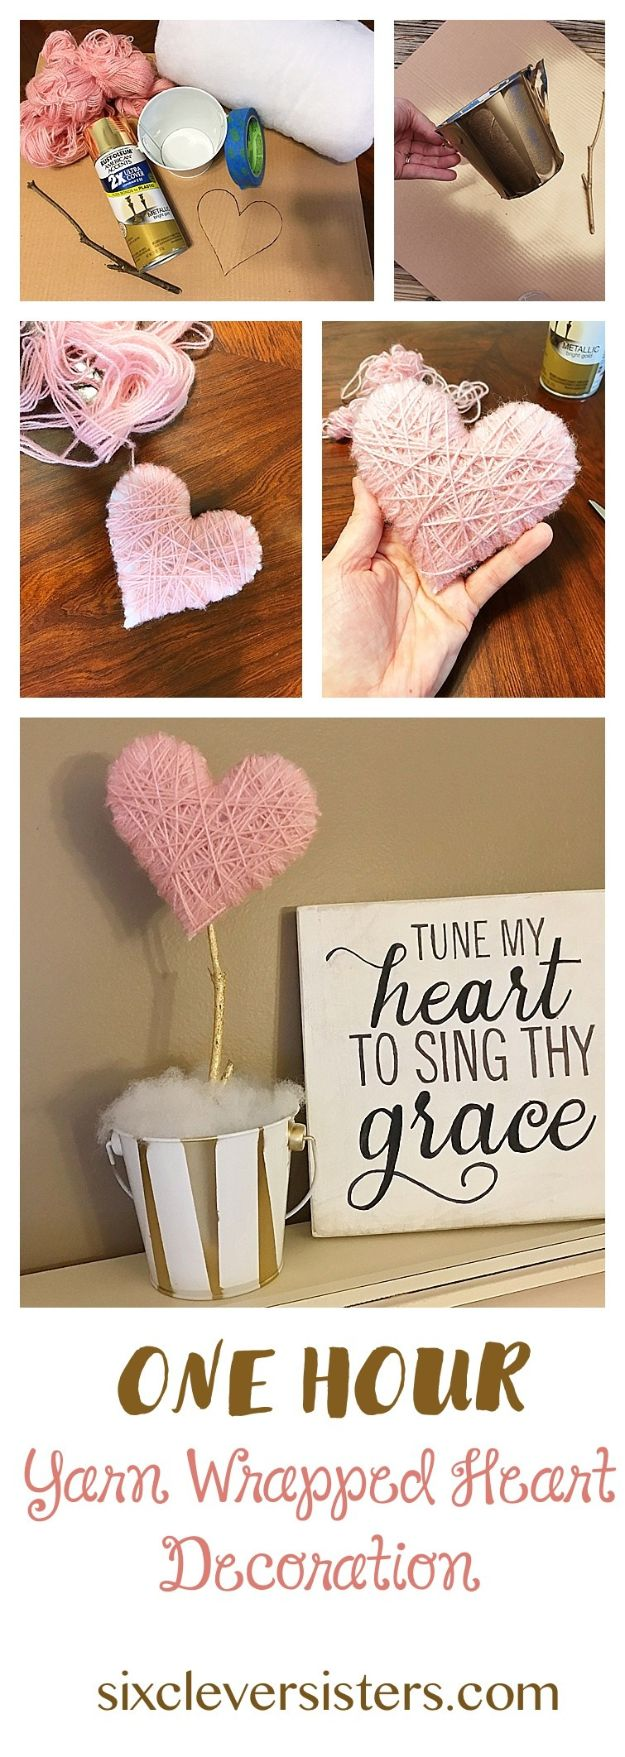 Crafts To Make and Sell - Yarn Wrapped Heart - 75 MORE Easy DIY Ideas for Cheap Things To Sell on Etsy, Online and for Craft Fairs. Make Money with crafts to sell ideas #crafts